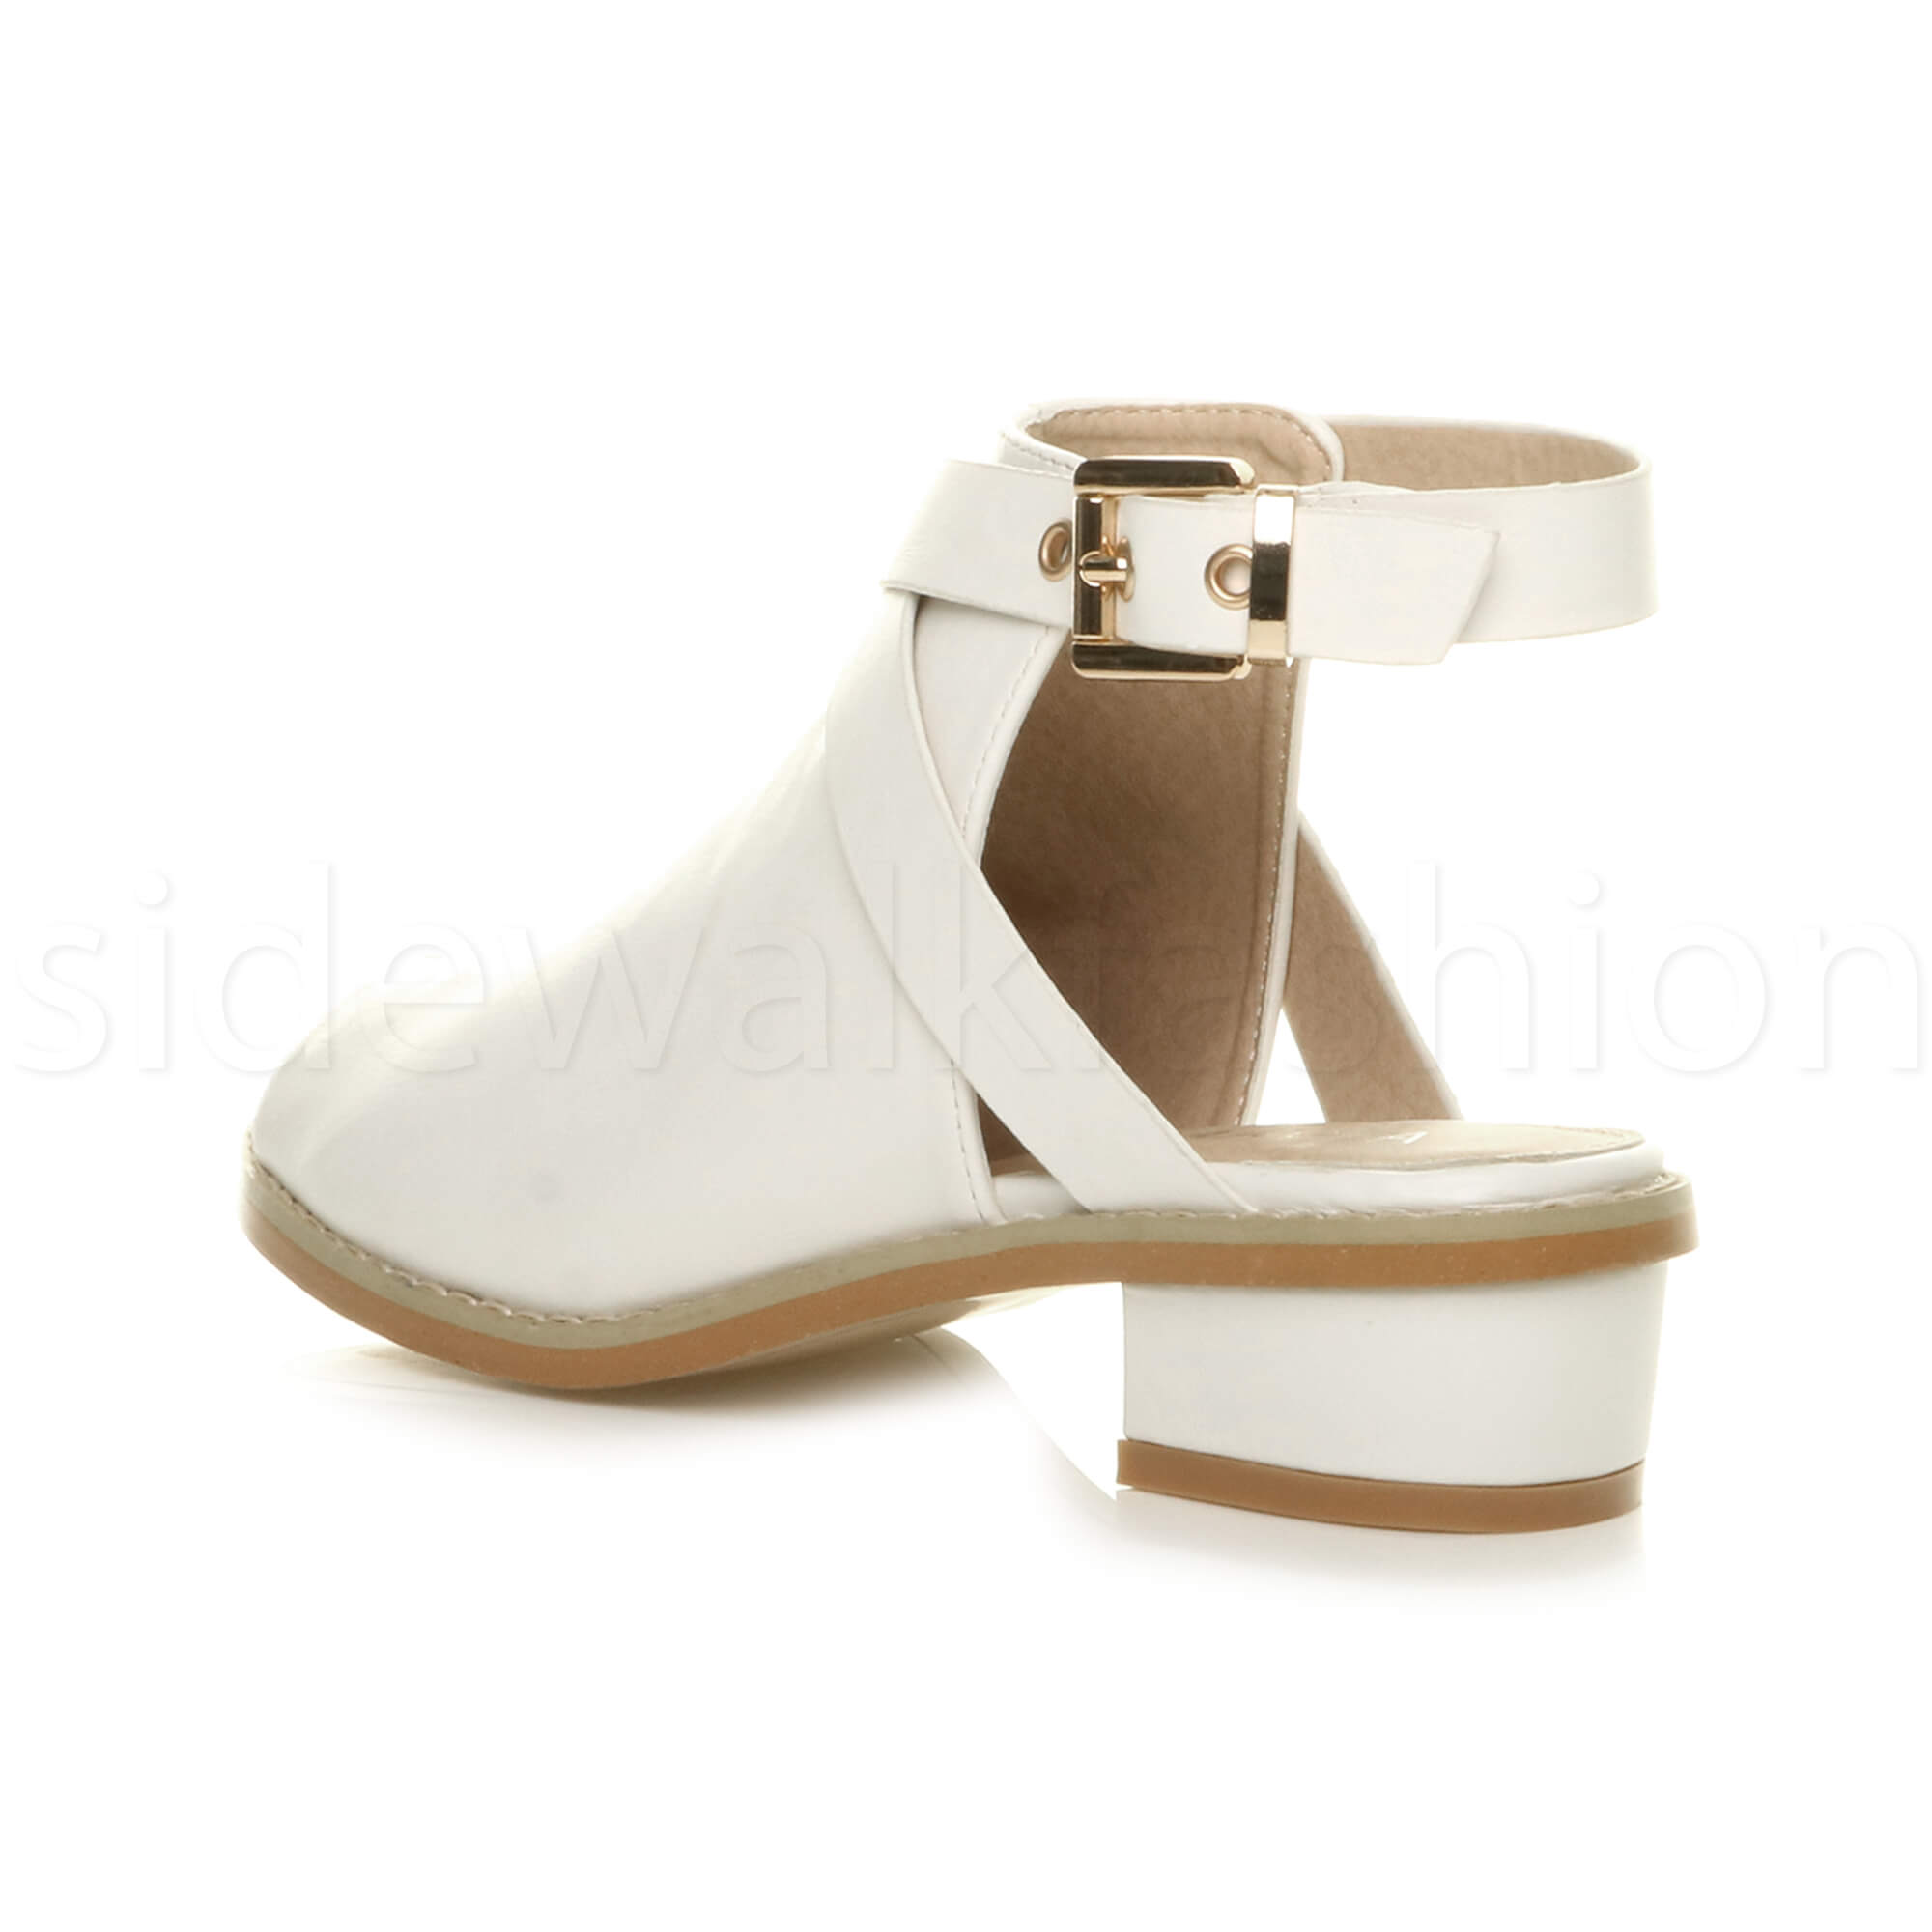 Womens-ladies-low-mid-heel-strap-open-backless-peep-toe-boots-sandals-shoes-size thumbnail 24